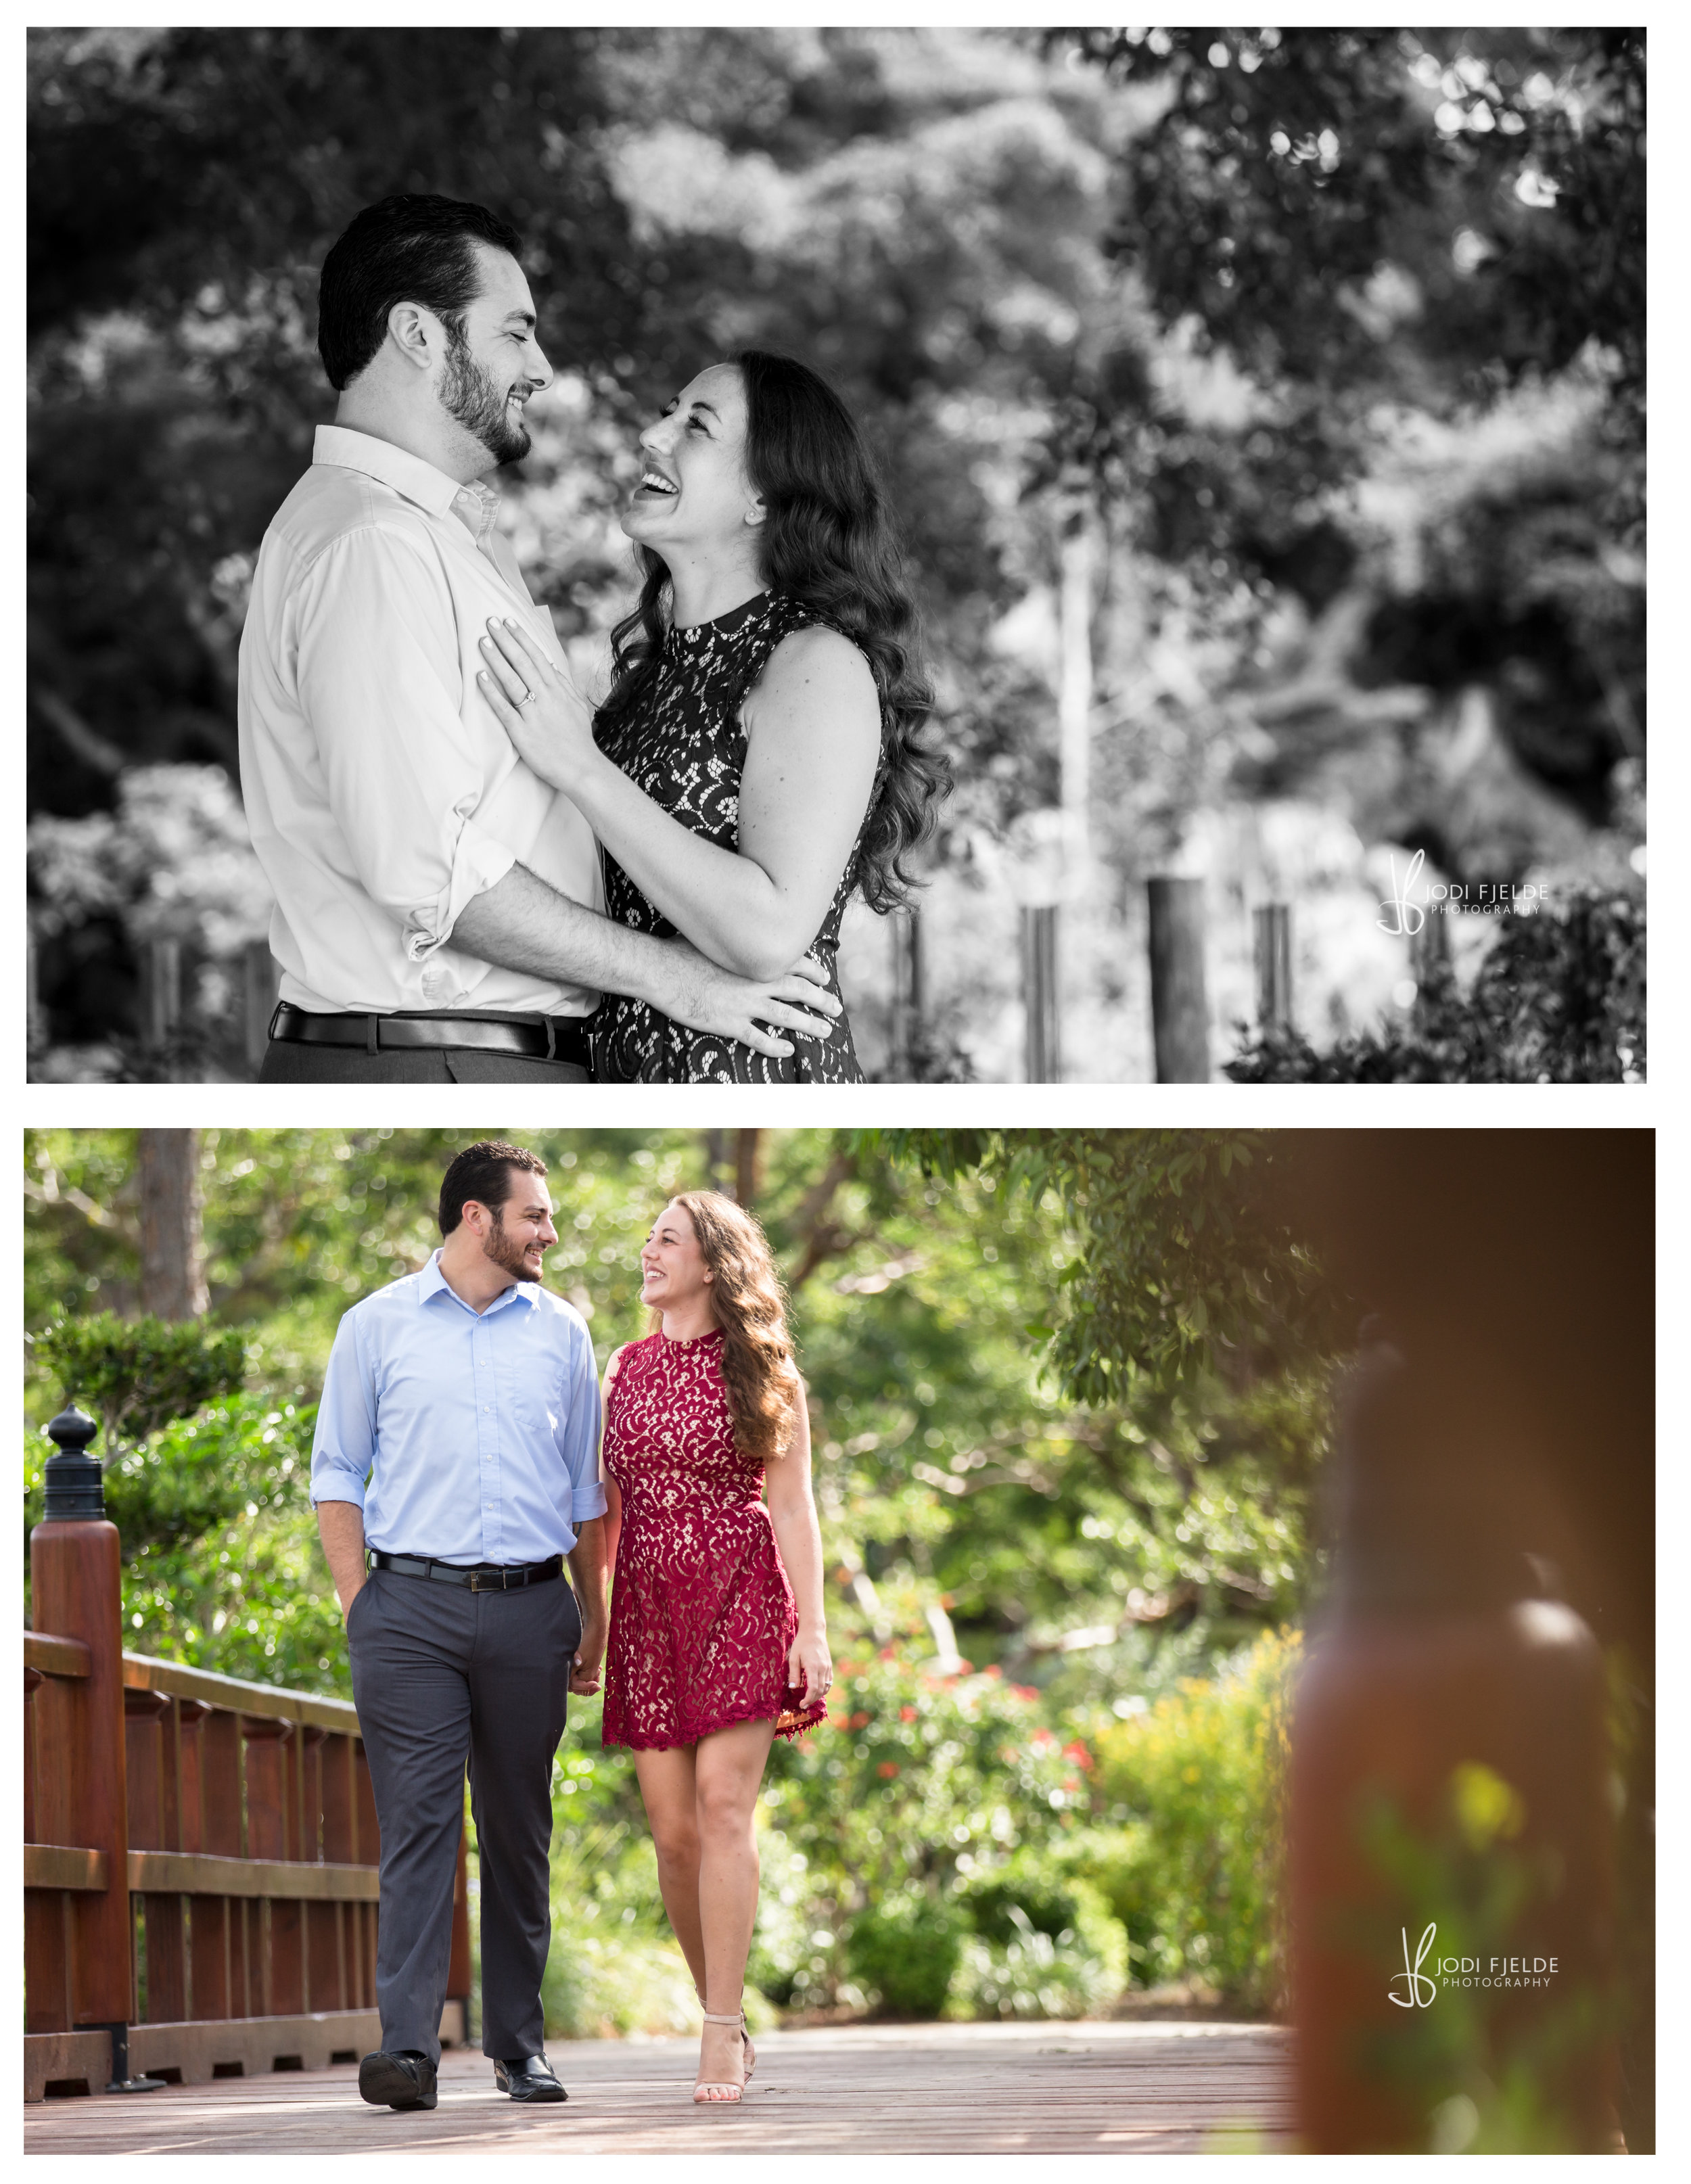 Morikami_Museum_Gardens_Delray_Beach_Engagement_Heather_and Doug_3.jpg